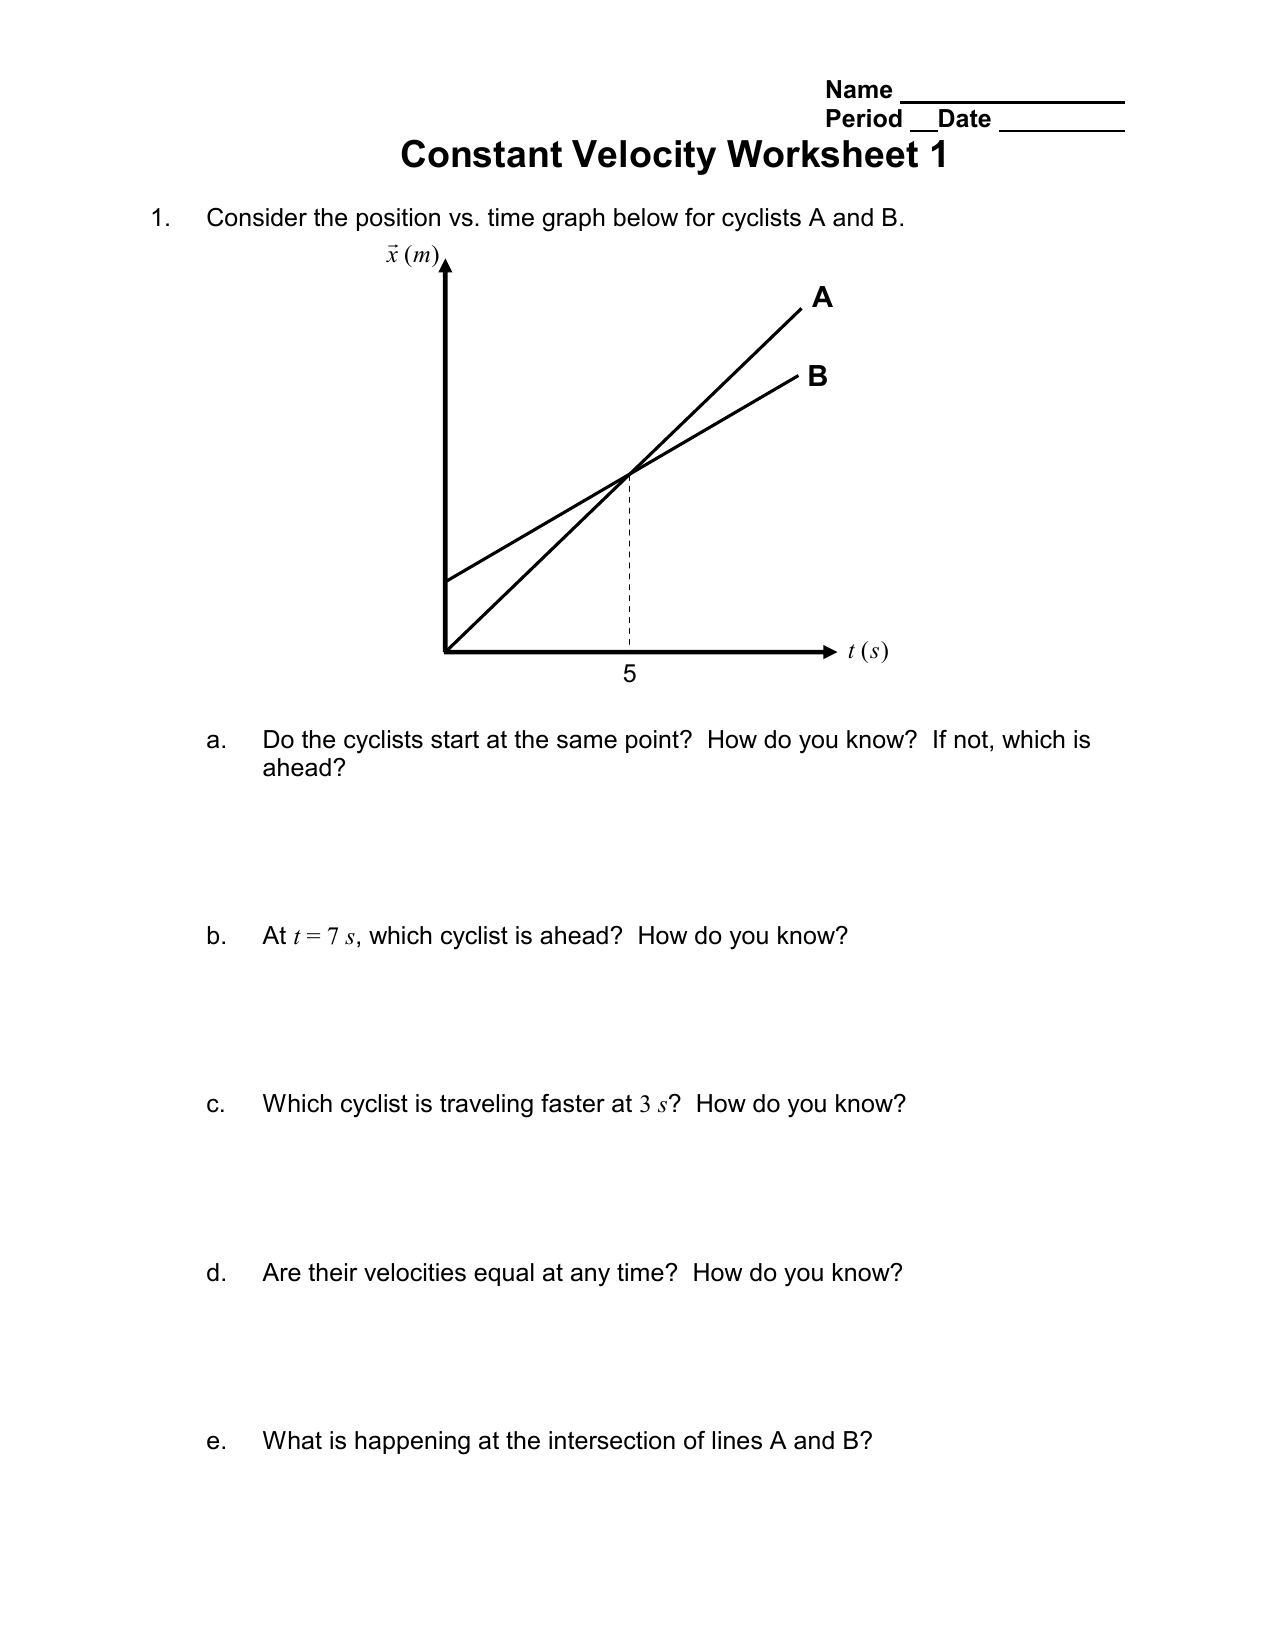 worksheet Velocity Worksheet 3 1 Answers constant velocity worksheet 1 a b